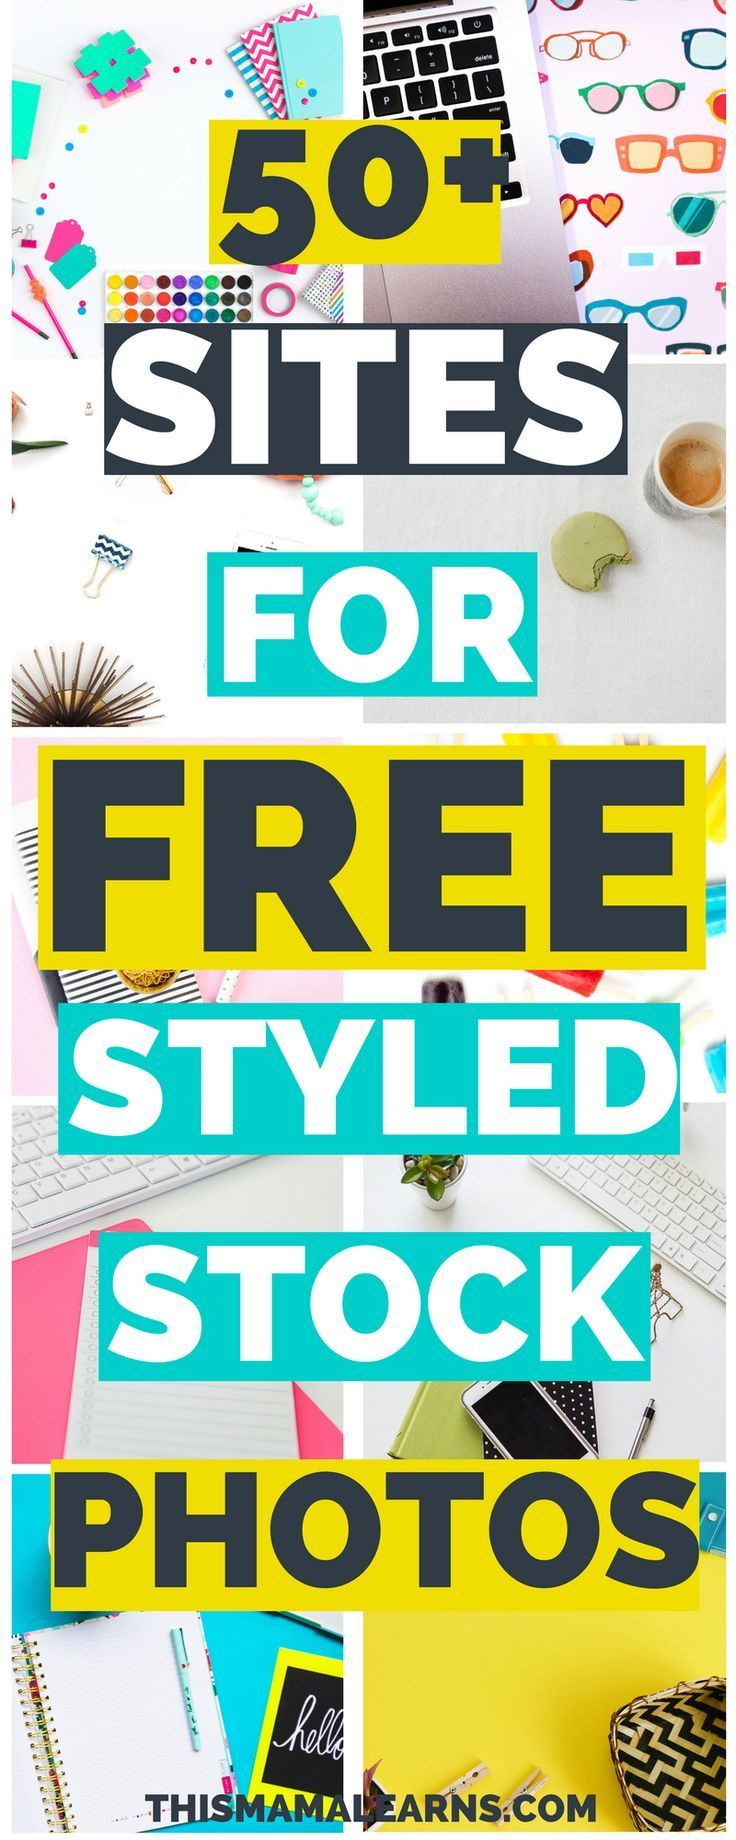 Got image envy? No more! Here's the ultimate list of feminine styled stock photo sites - psst... they're all offering images for free!